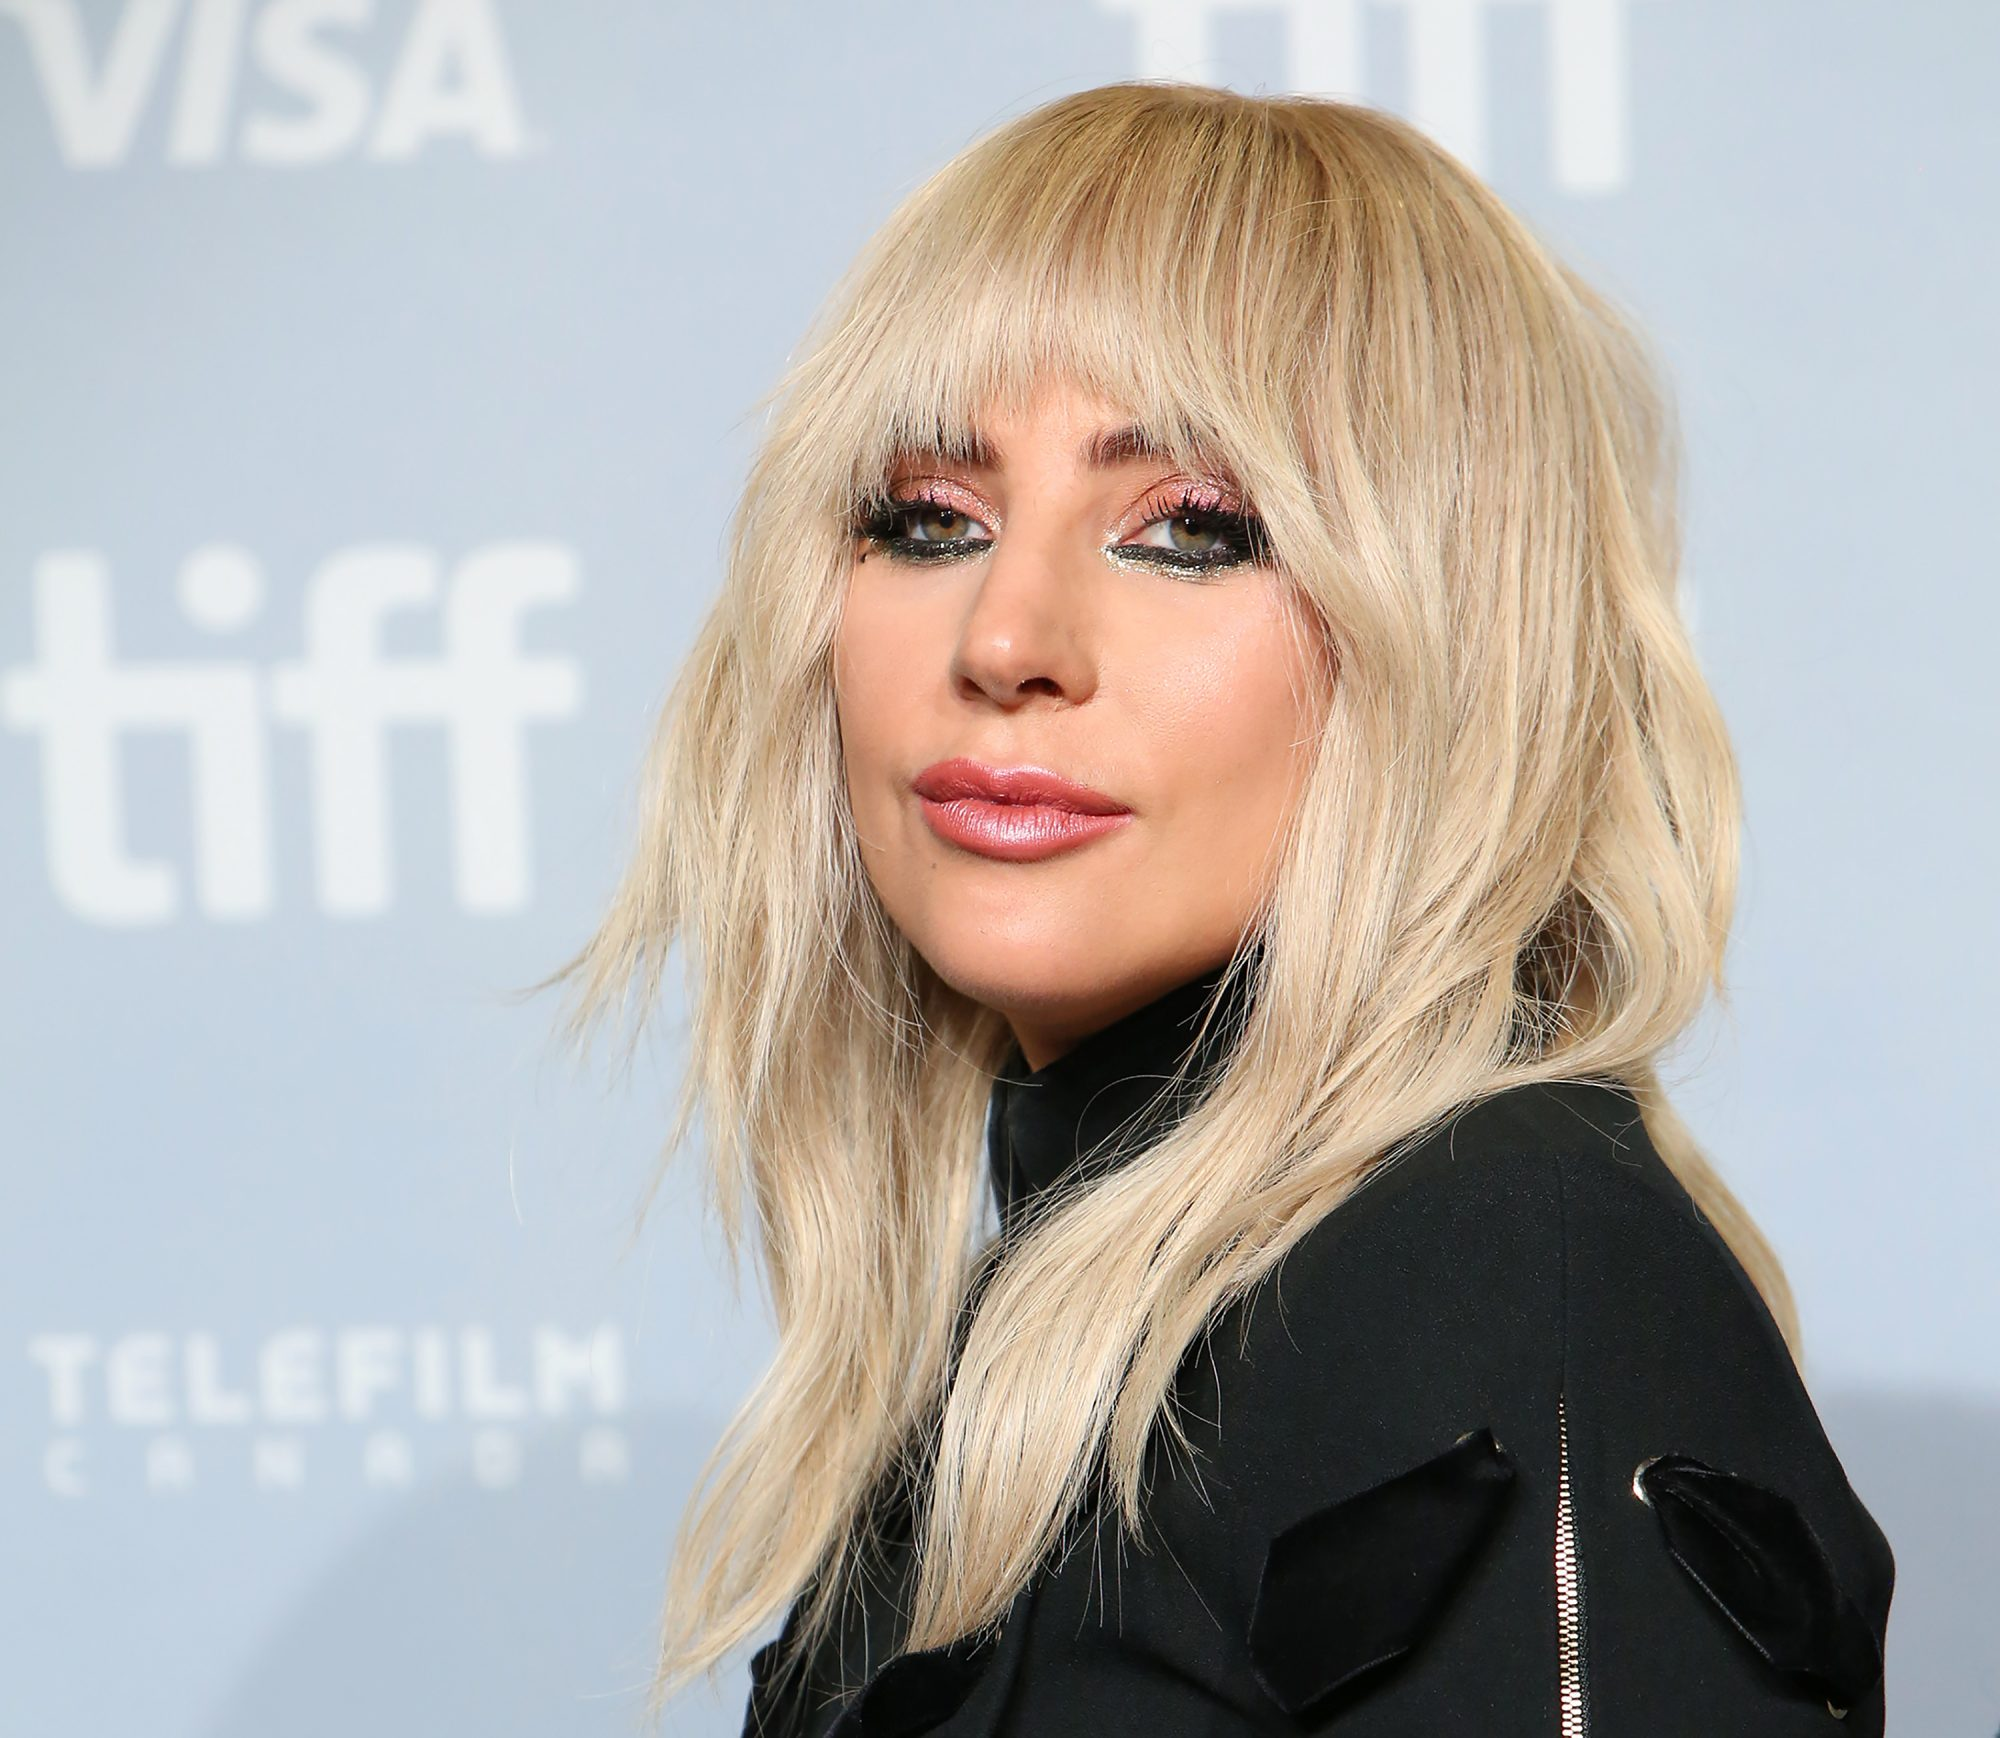 Lady Gaga, on remembering that we're all human